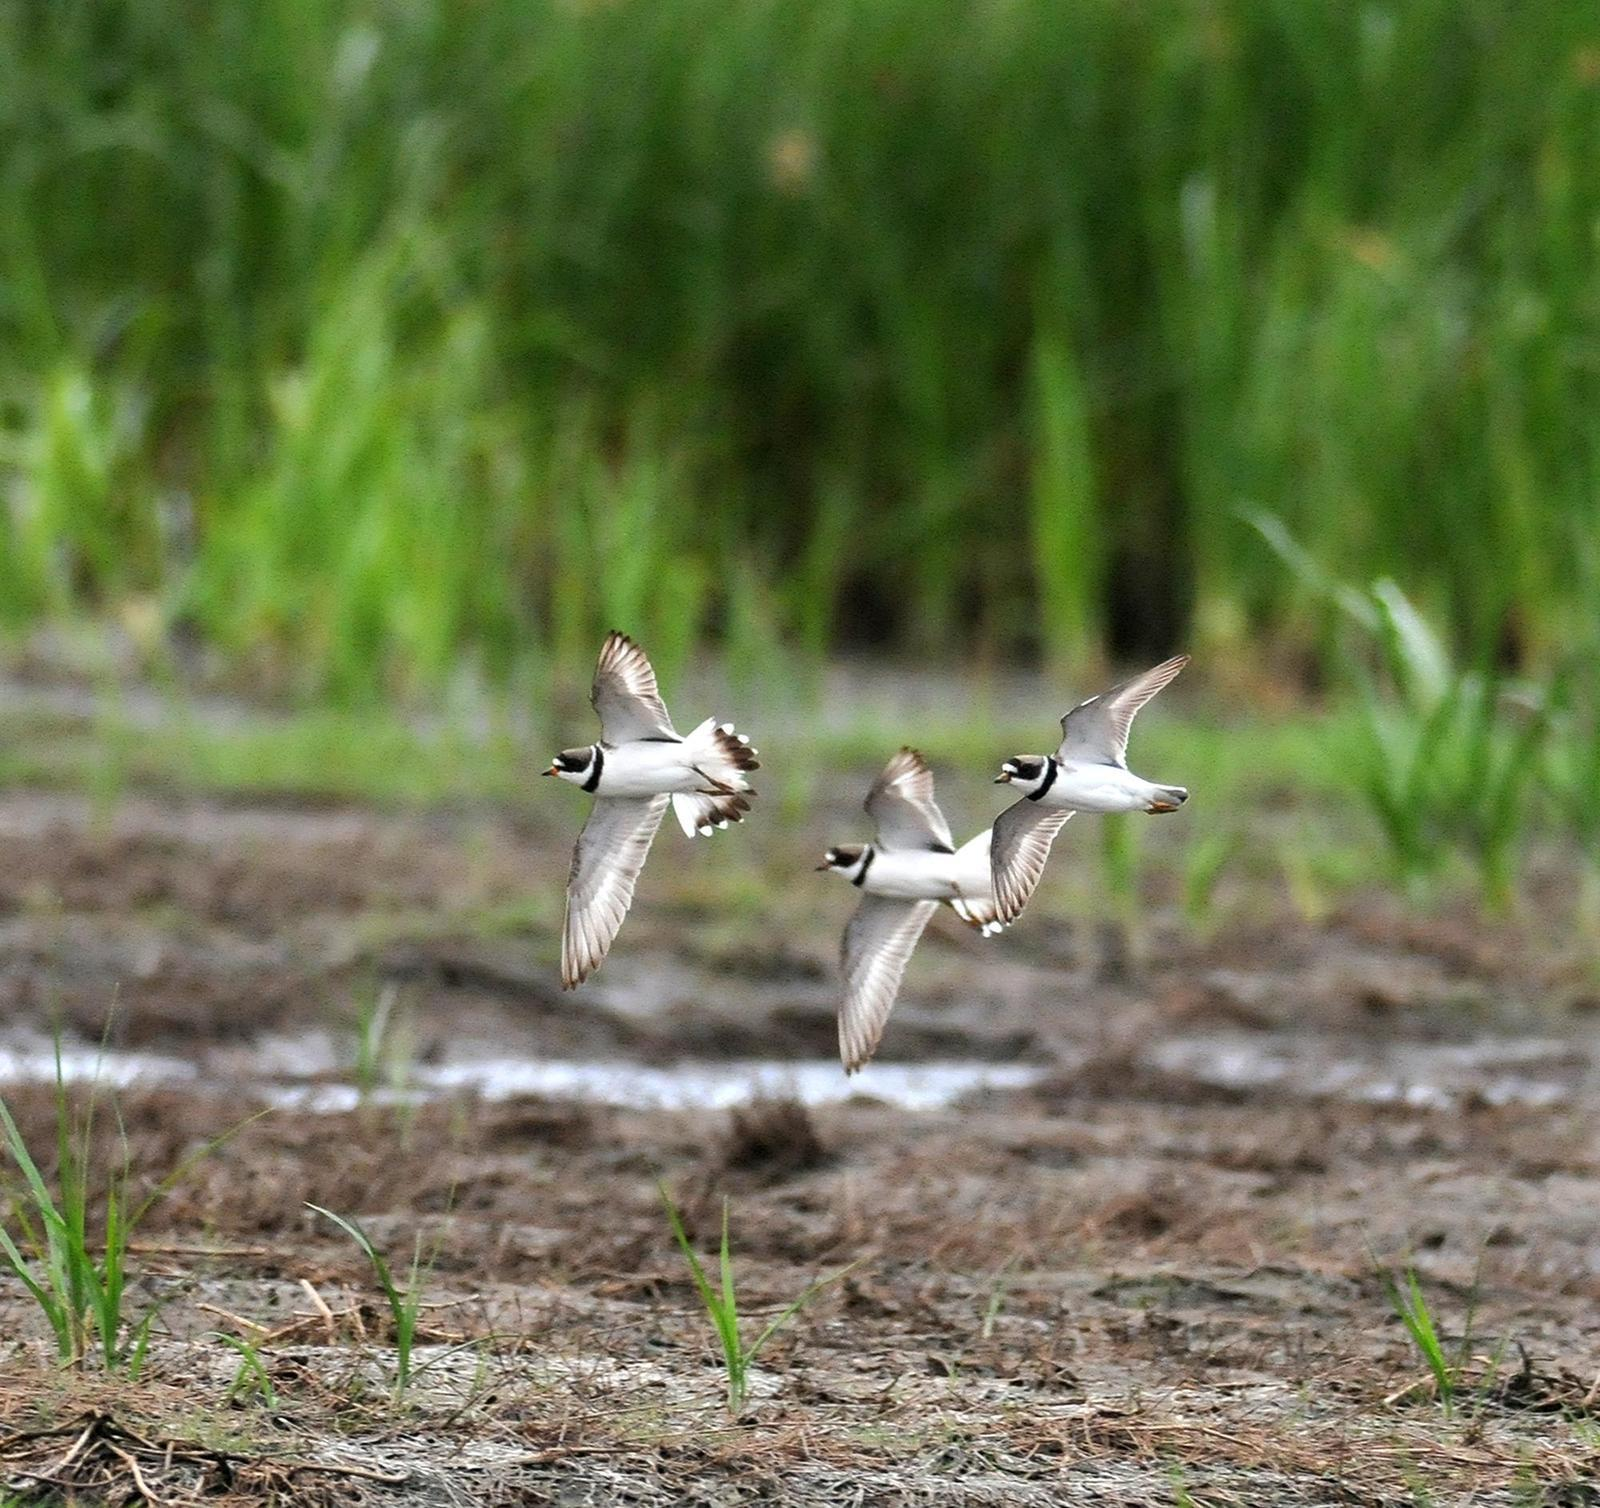 Semipalmated Plover Photo by Steven Mlodinow